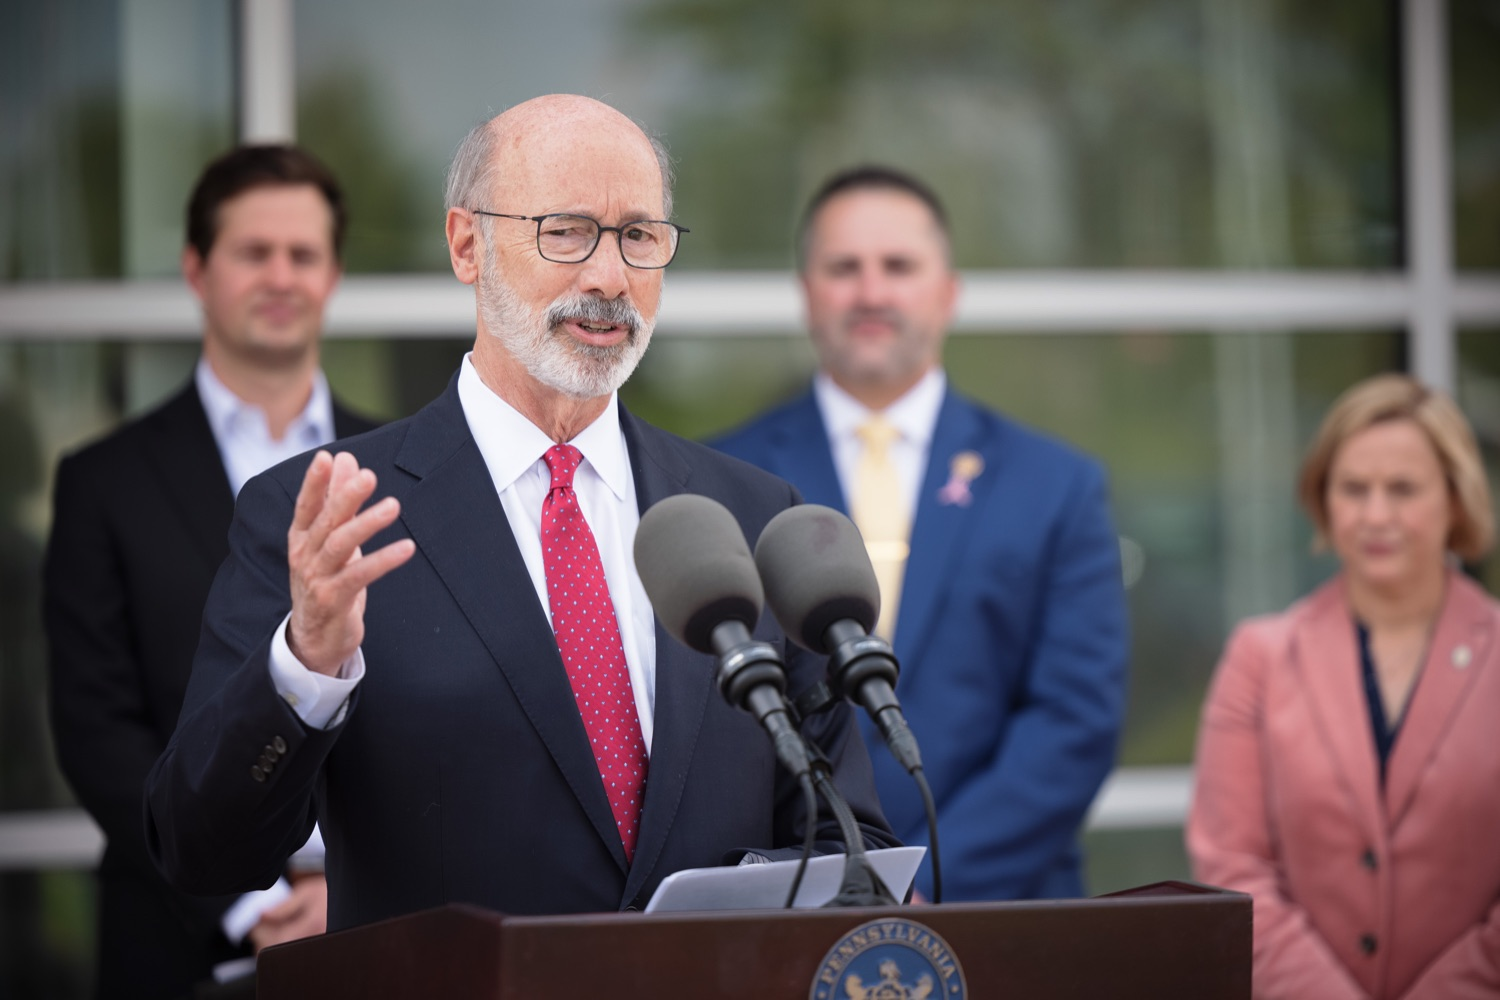 """<a href=""""https://filesource.wostreaming.net/commonwealthofpa/photo/20126_gov_economicDevelopment_dz_006.jpg"""" target=""""_blank"""">⇣Download Photo<br></a>Pennsylvania Governor Tom Wolf speaking with the press.  Governor Tom Wolf joined Clemens Food Group leaders, Agriculture Secretary Russell Redding, Sen. Maria Collett, Rep. Steve Malagari and members of the Governors Action Team today to tour the construction of the companys new facility in Montgomery County. The Wolf Administration supported the project which will expand the business operations and create new jobs in the region. Hatfield, PA   October 8, 2021"""